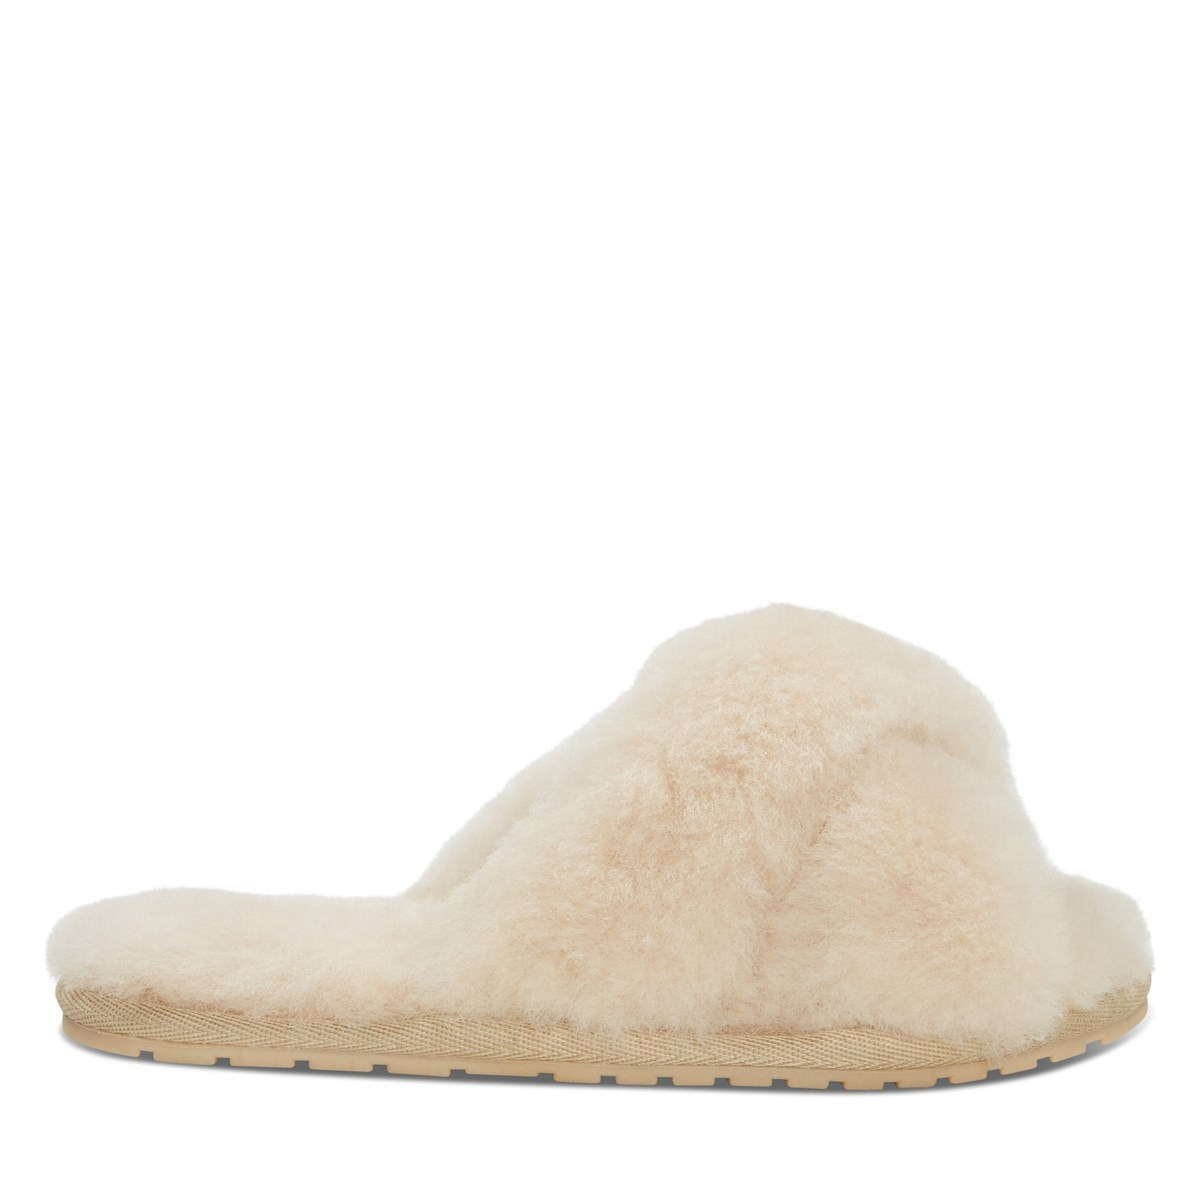 Woman's Mayberry Slippers in Beige